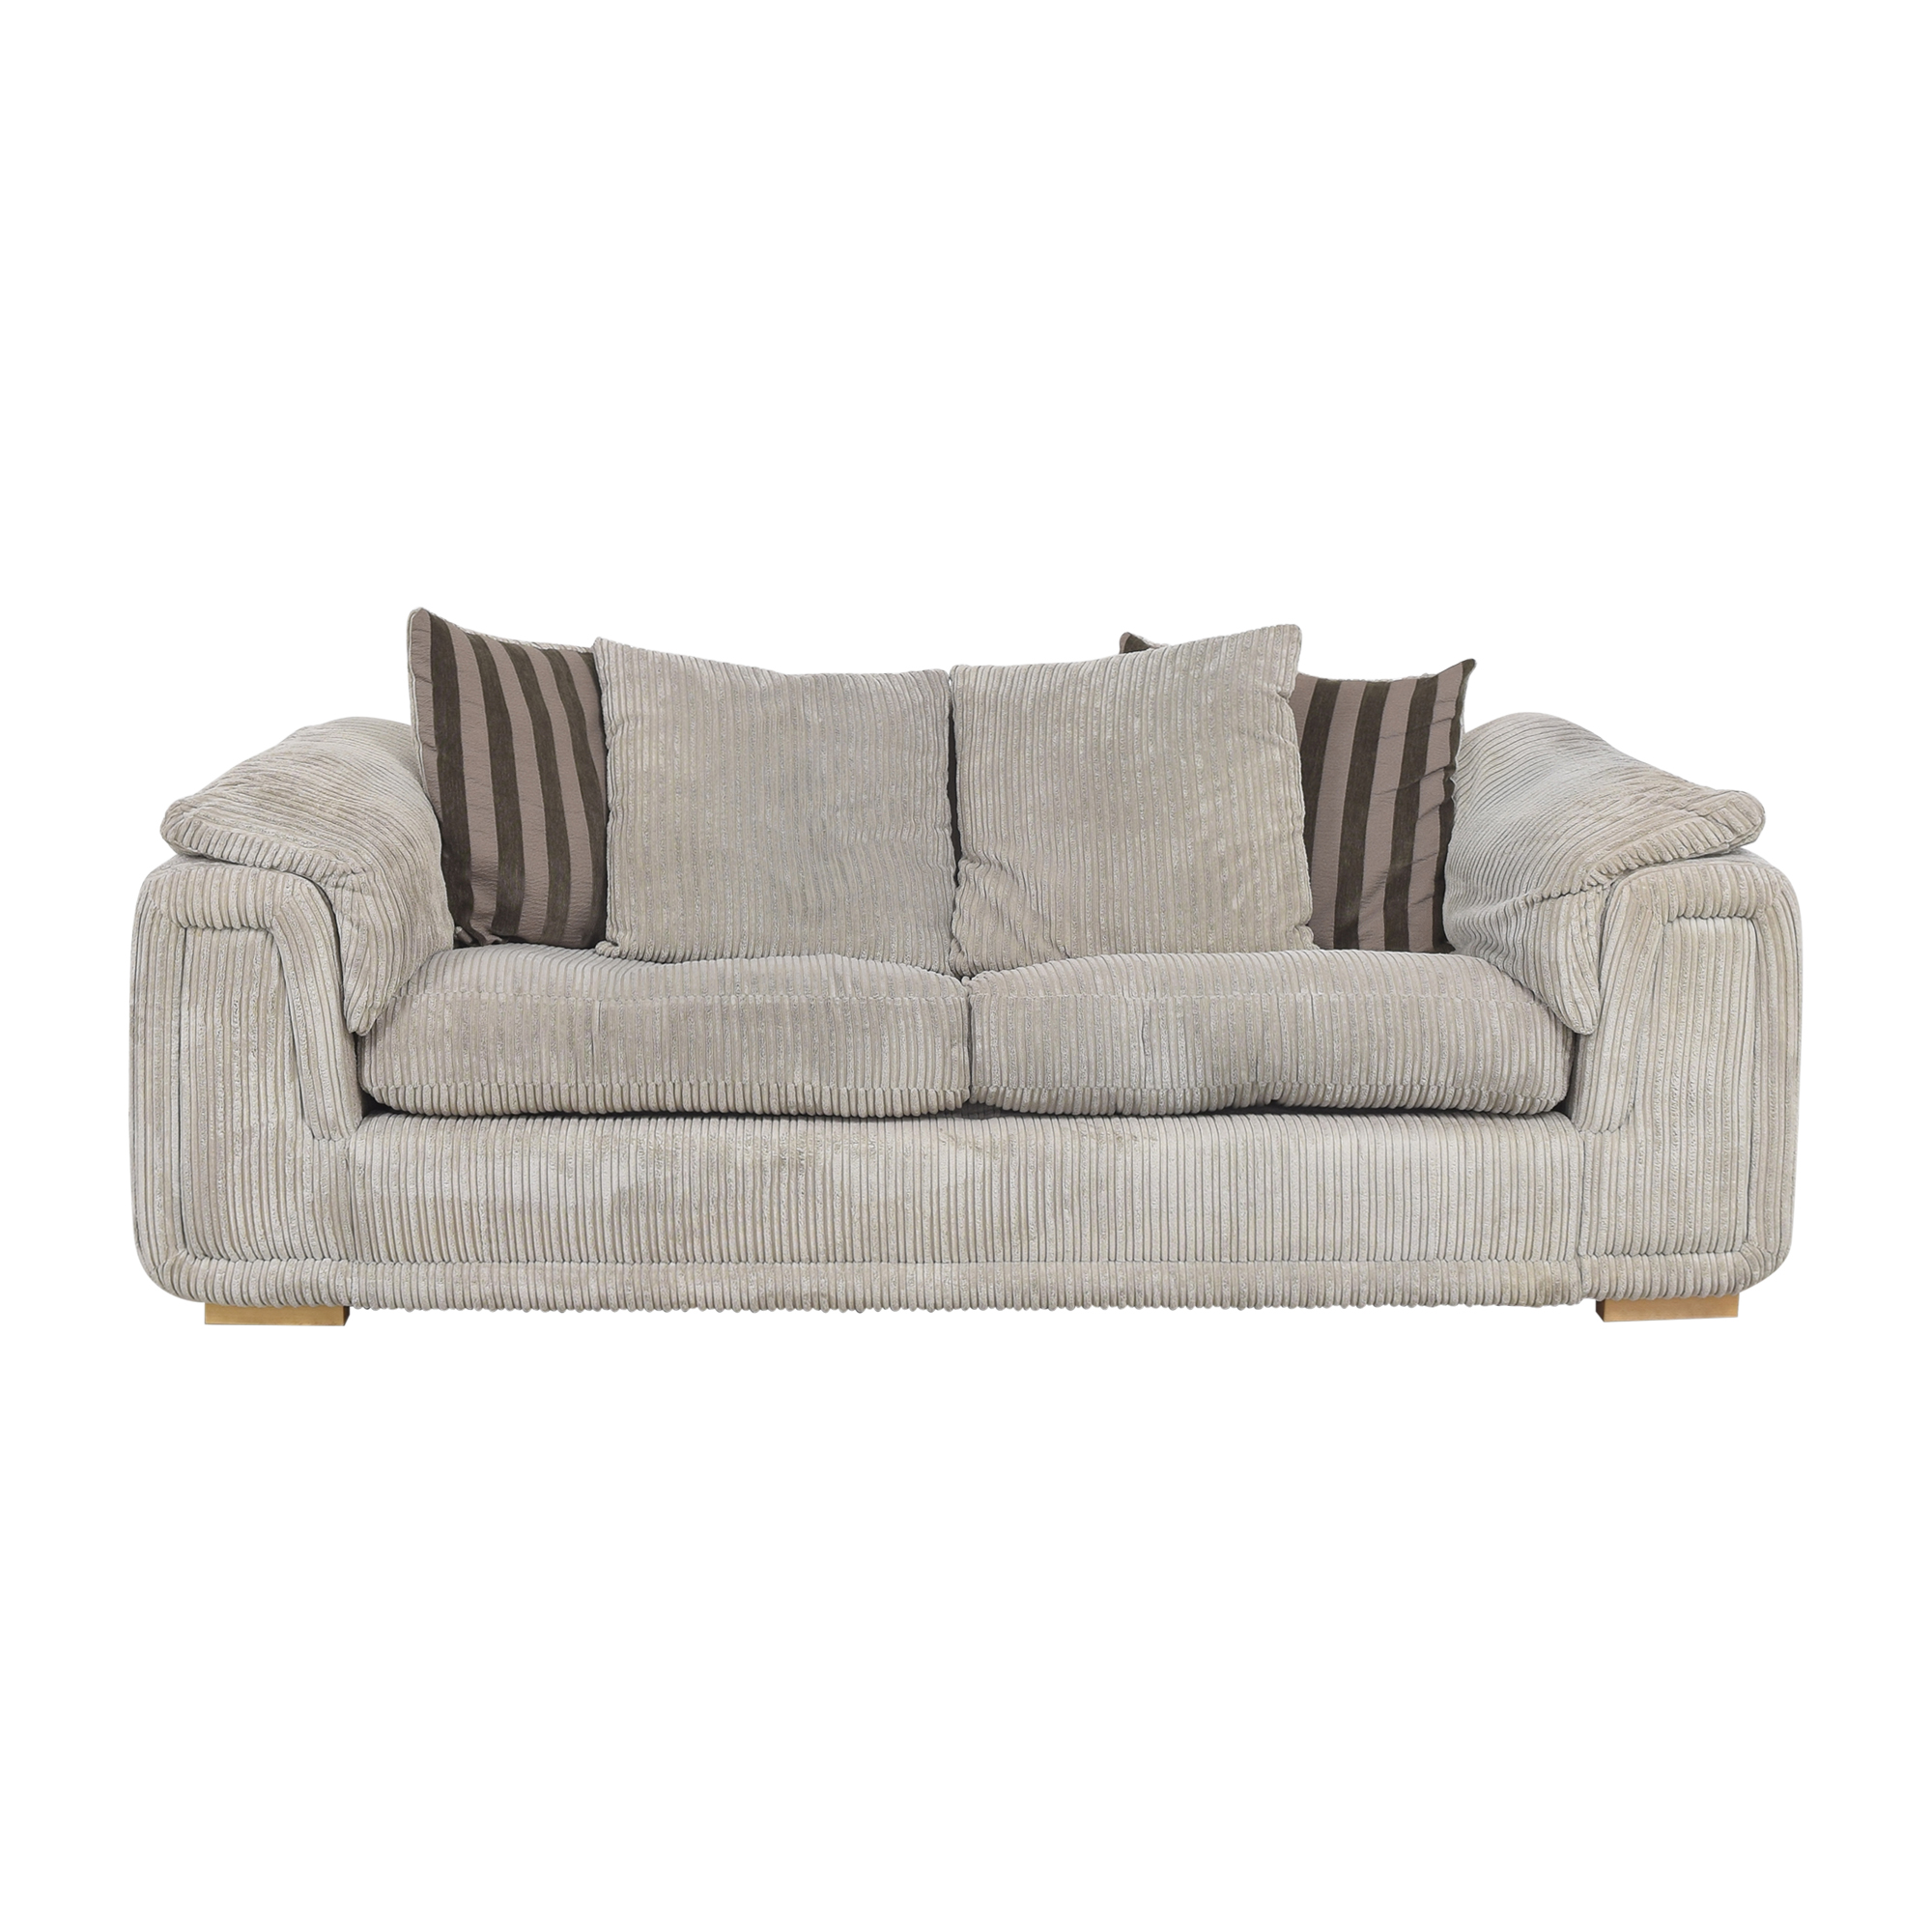 Two Cushion Sleeper Sofa ct